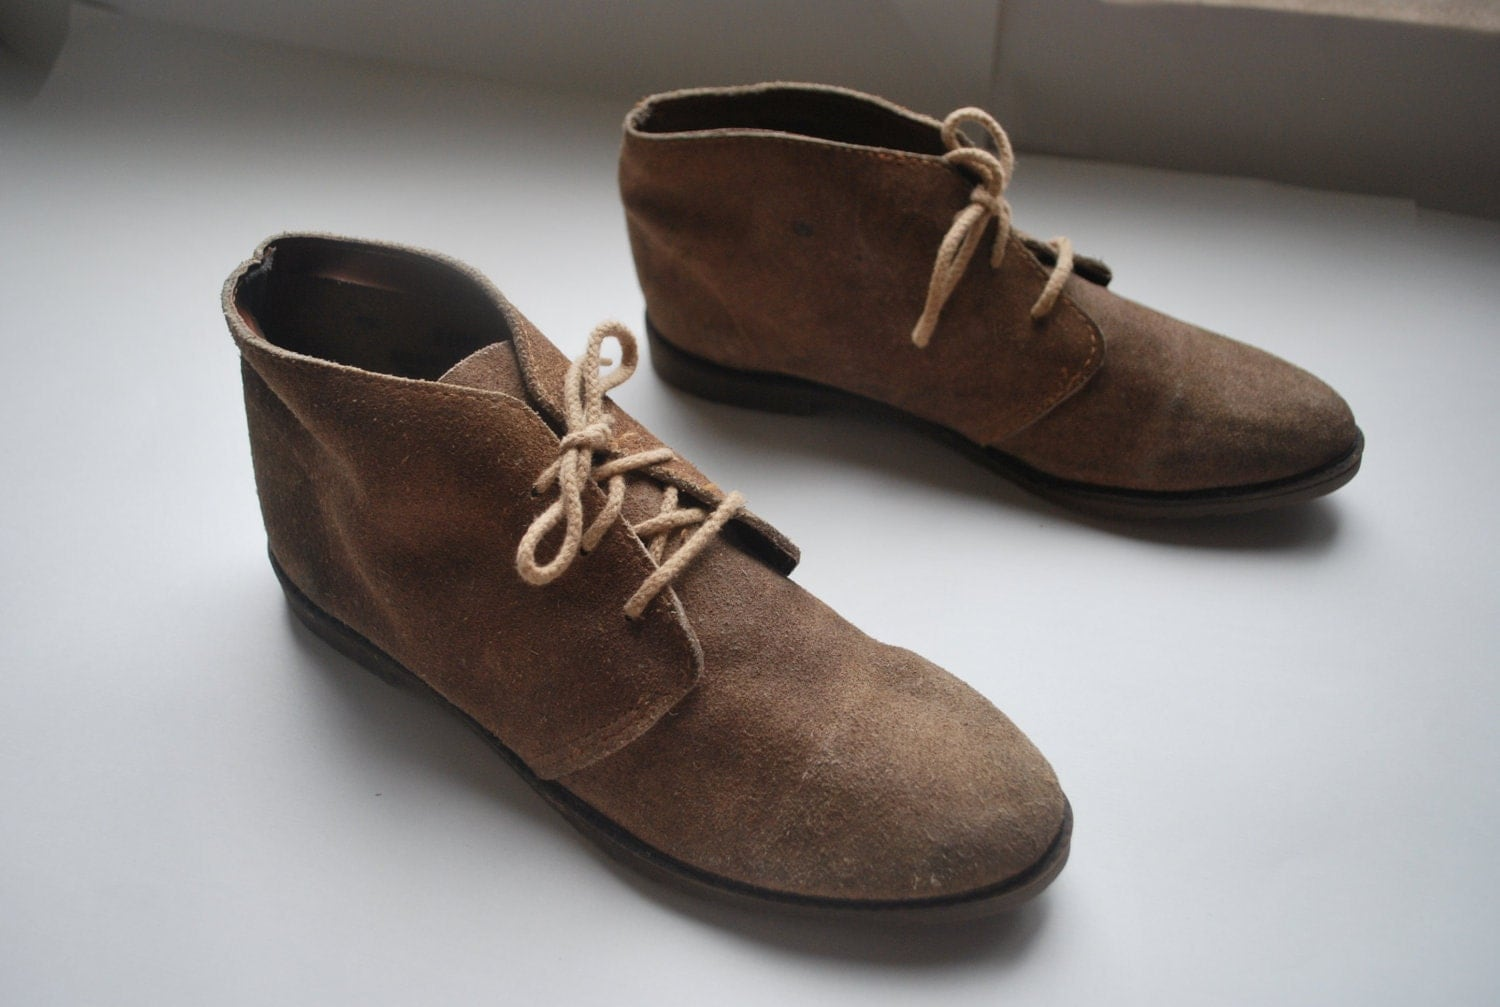 Camel Suede chukka boots .vintage lace up ankle booties .1970s